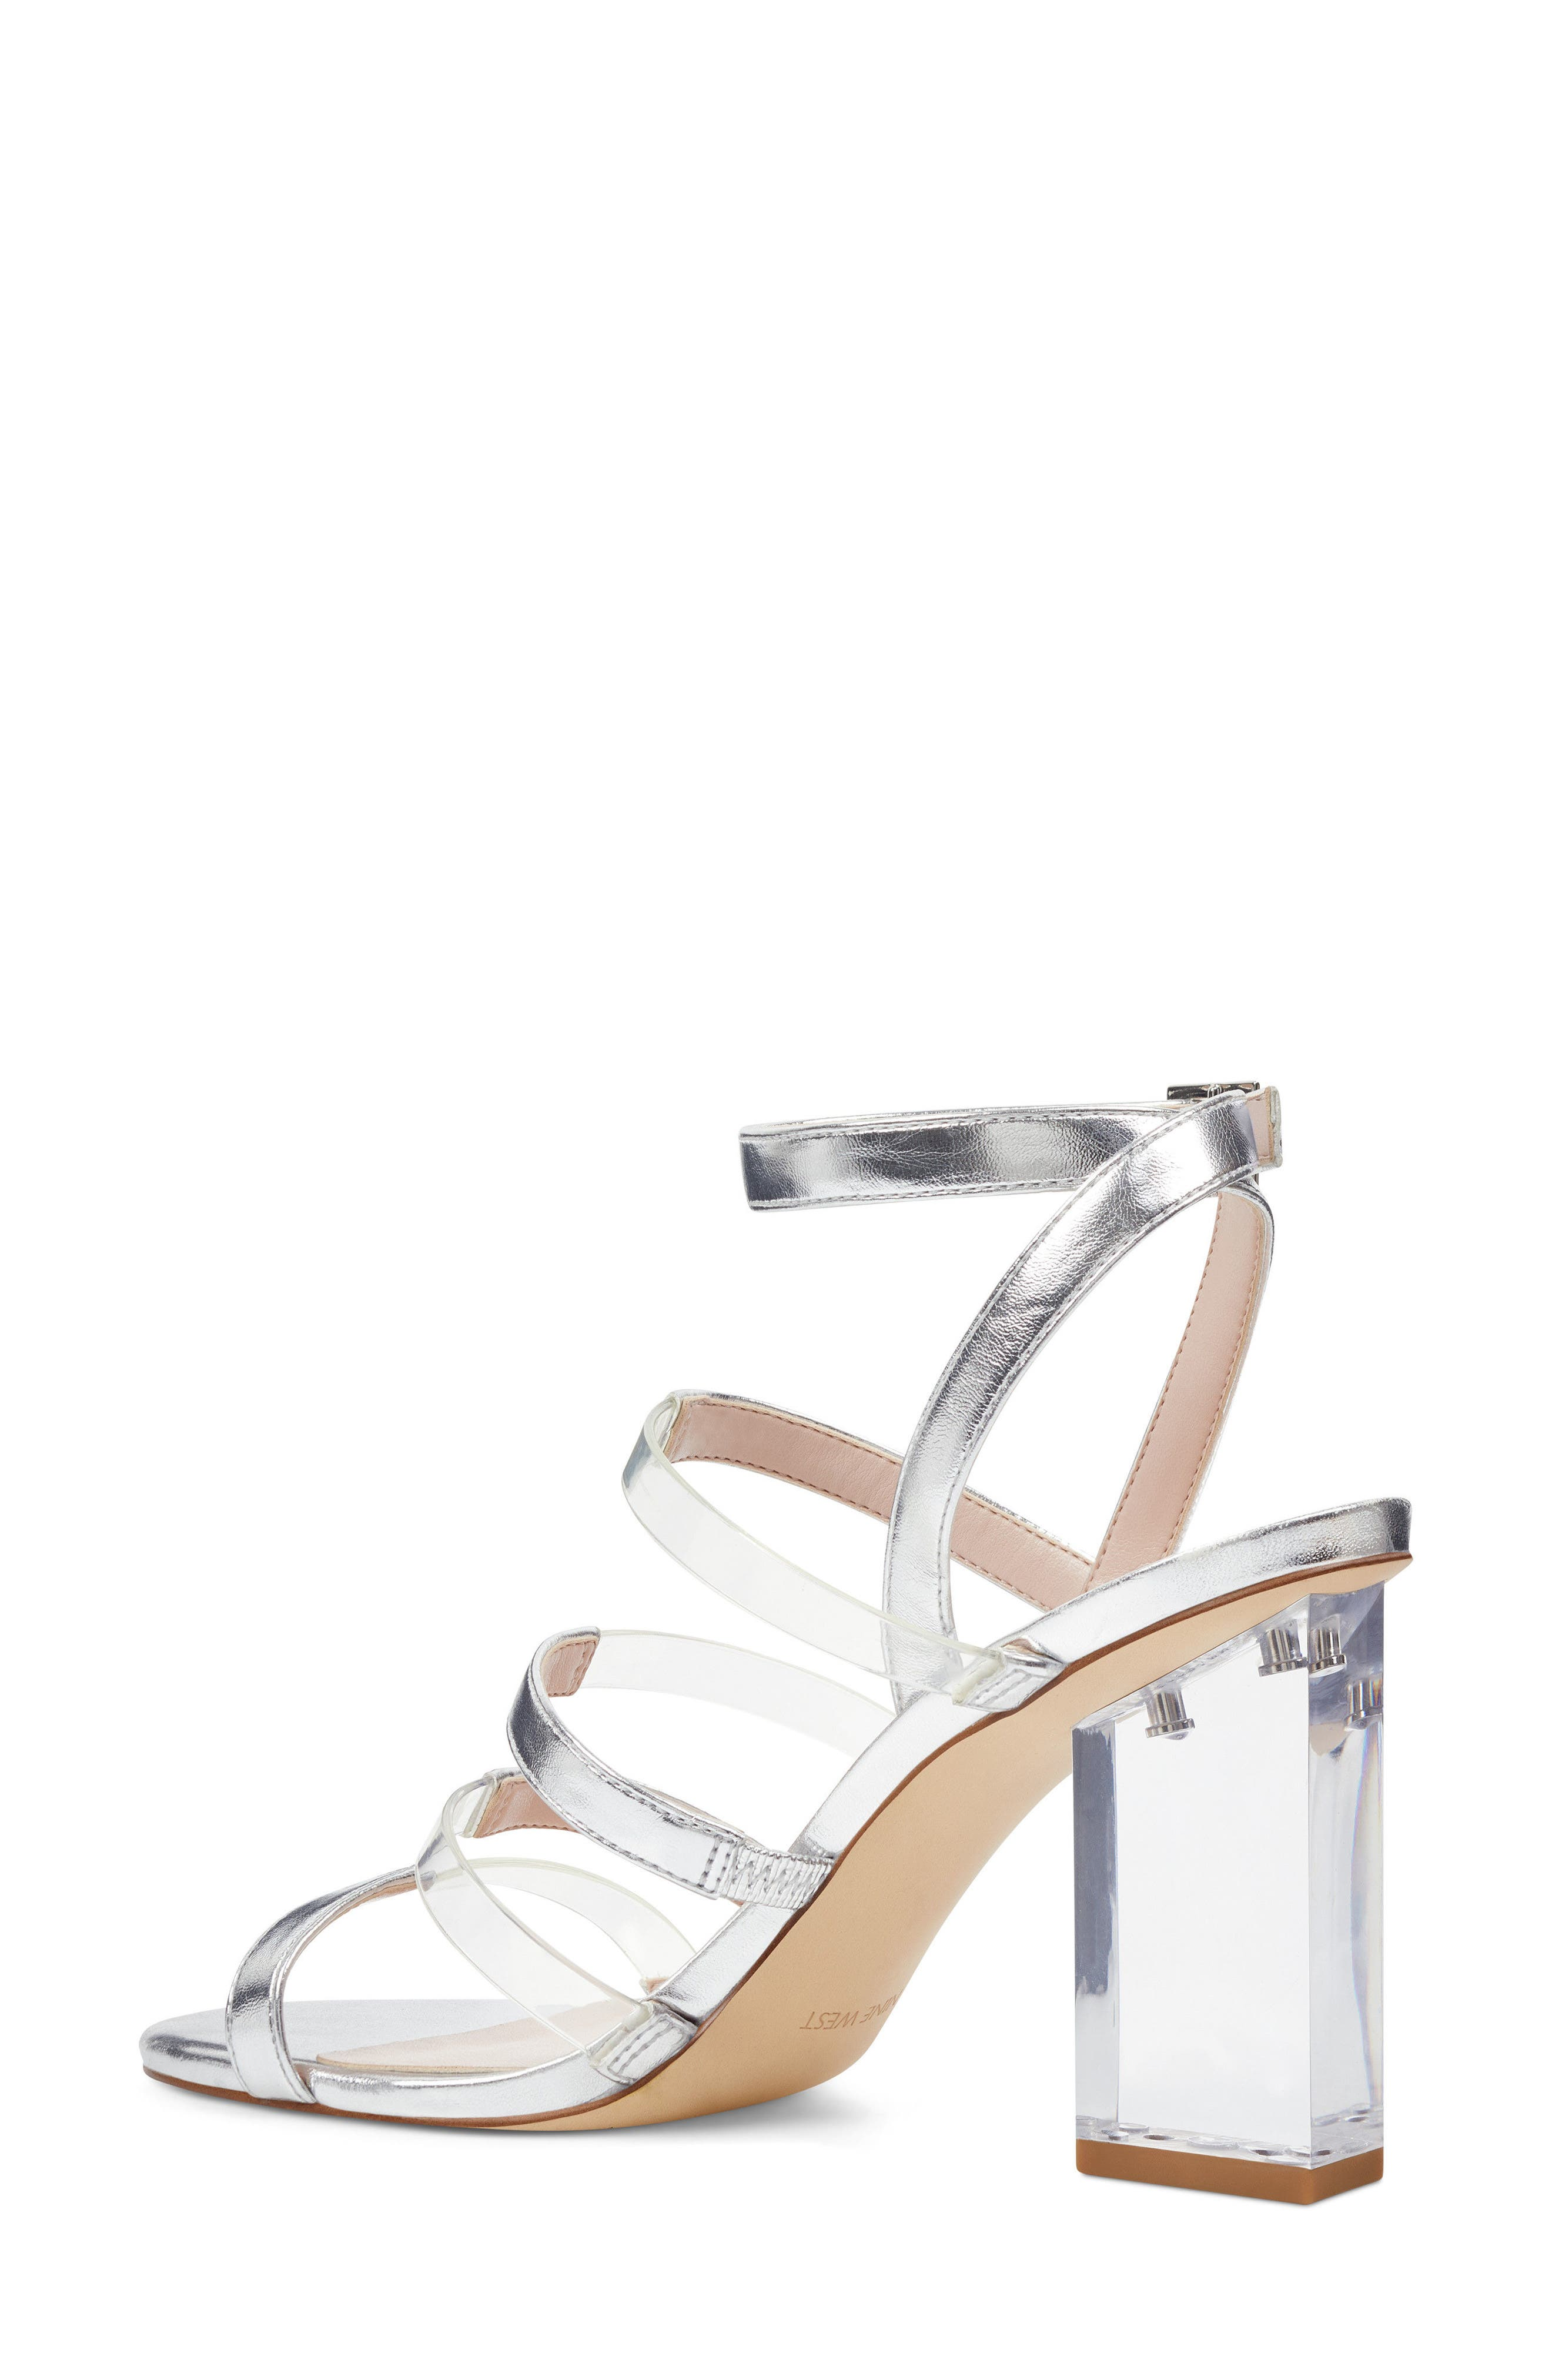 Fazzani Cage Sandal,                             Alternate thumbnail 2, color,                             CLEAR/ SILVER FAUX LEATHER